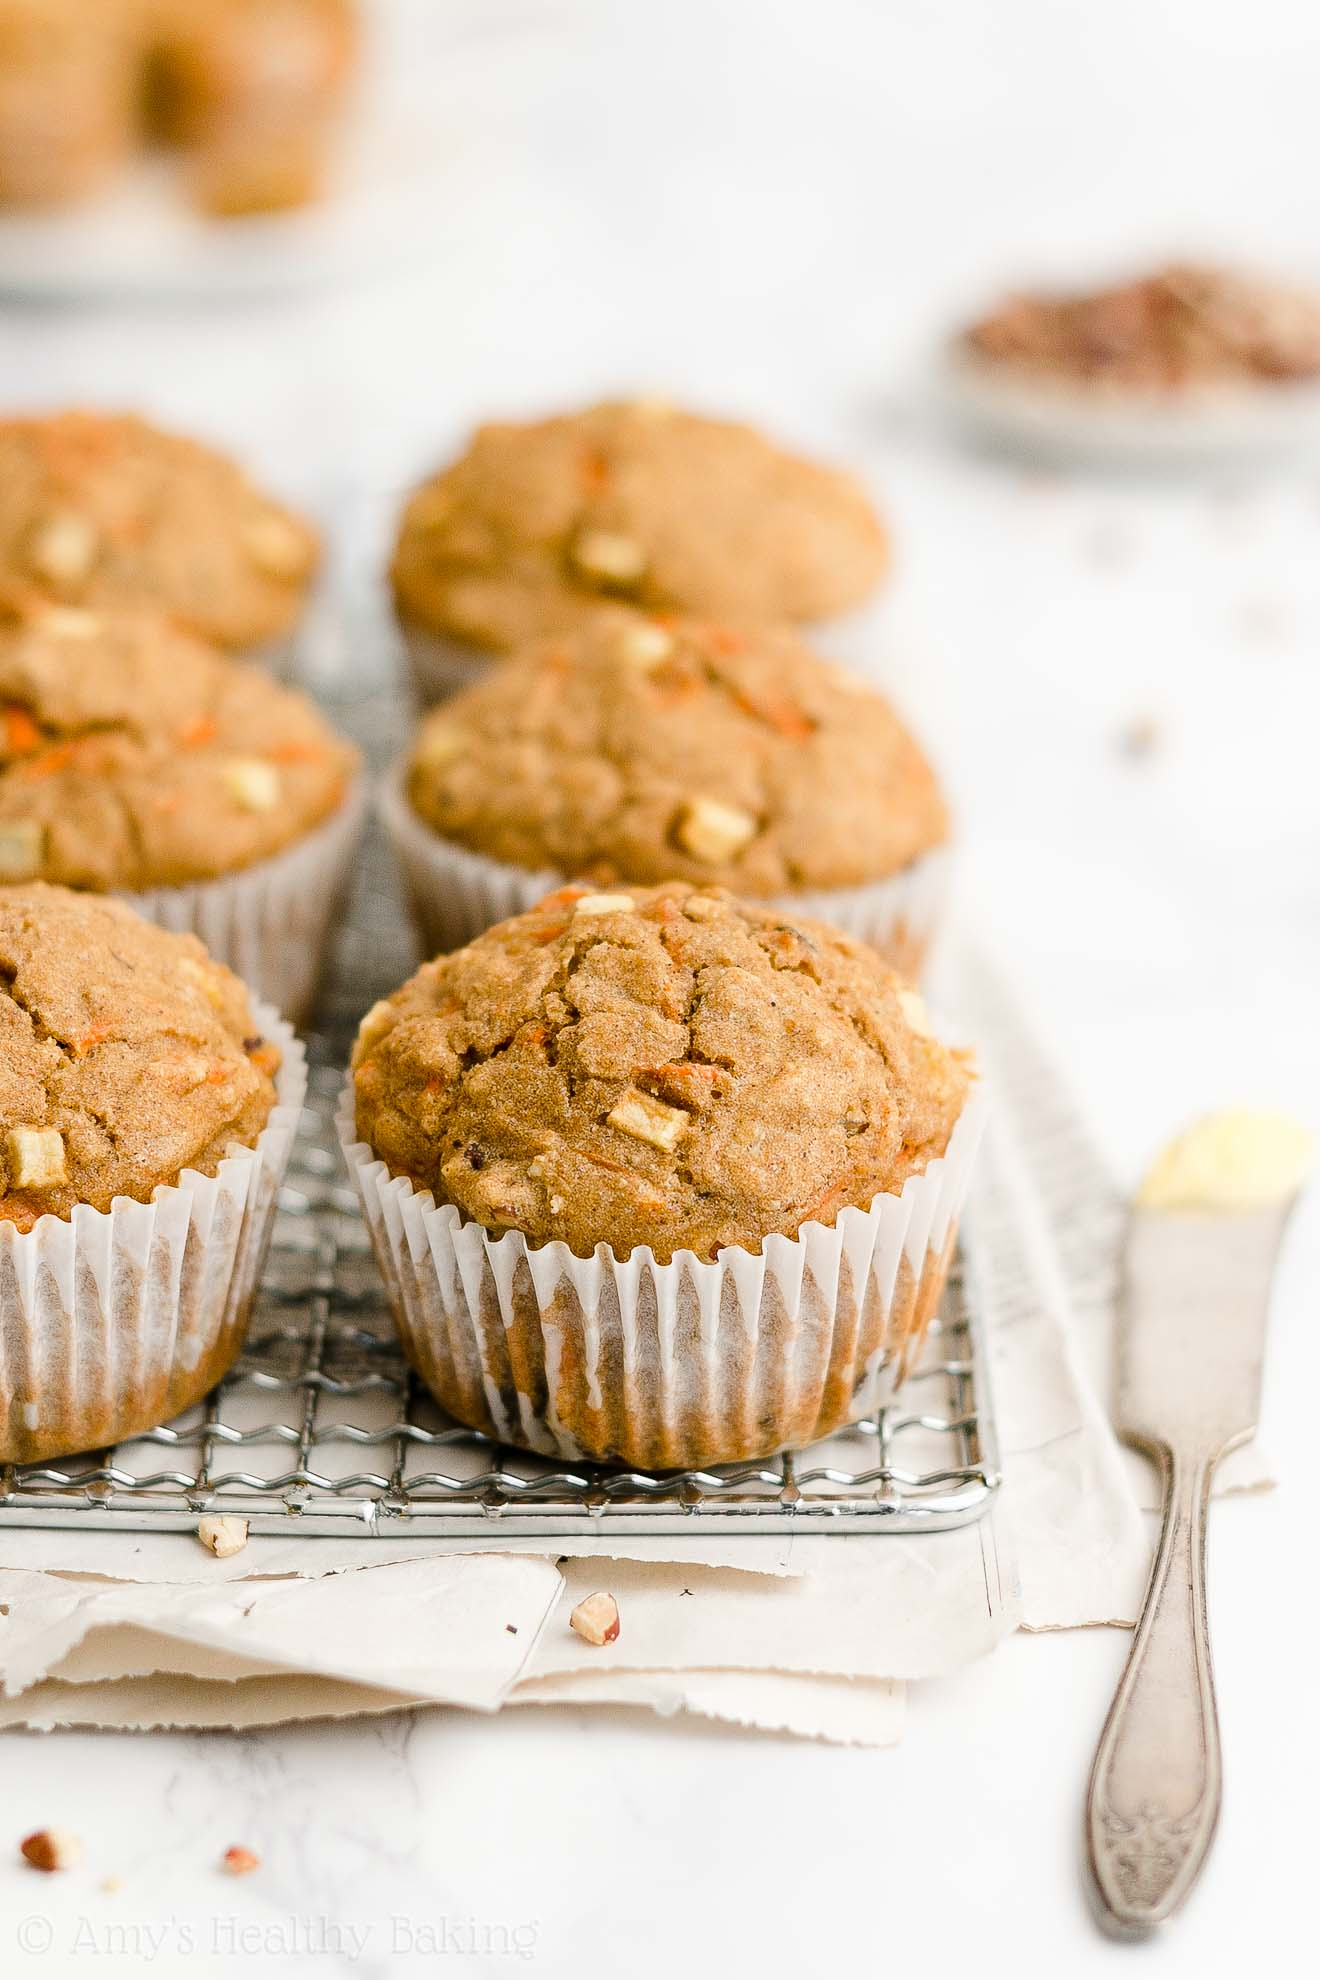 Best Easy Healthy Clean Eating Greek Yogurt Morning Glory Oatmeal Muffins